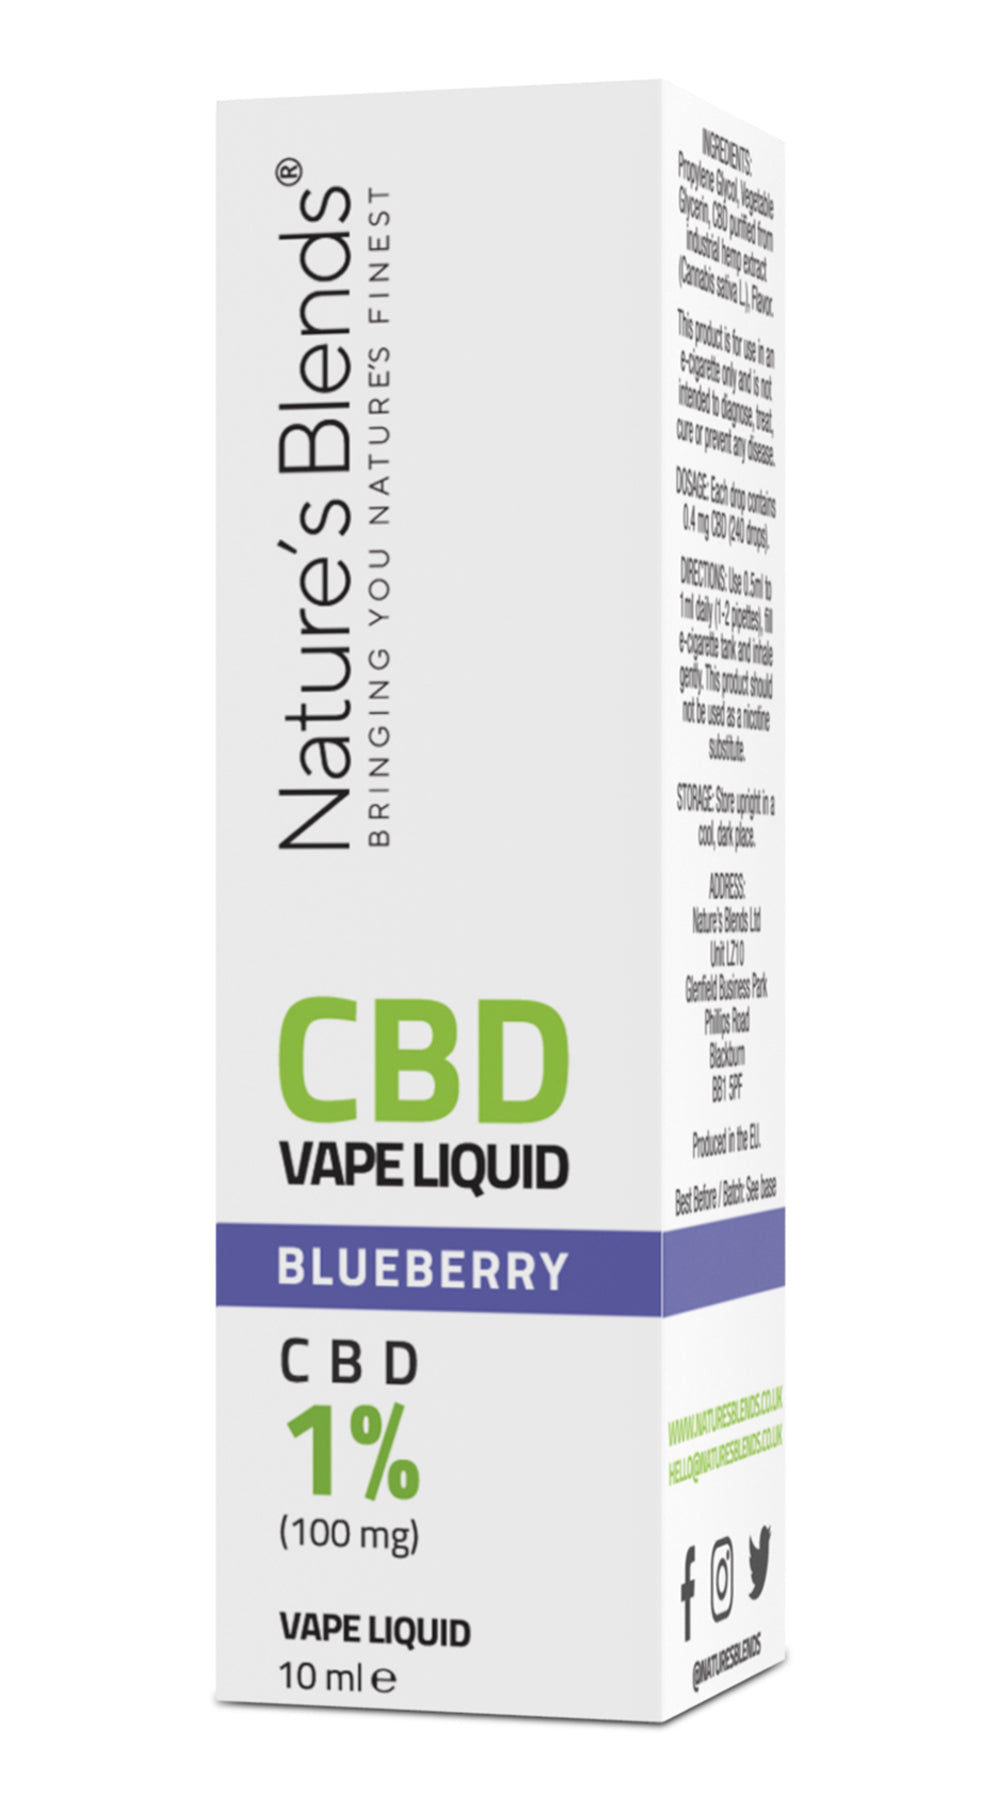 A blueberry flavour 100mg cbd vape packaging by natures blends